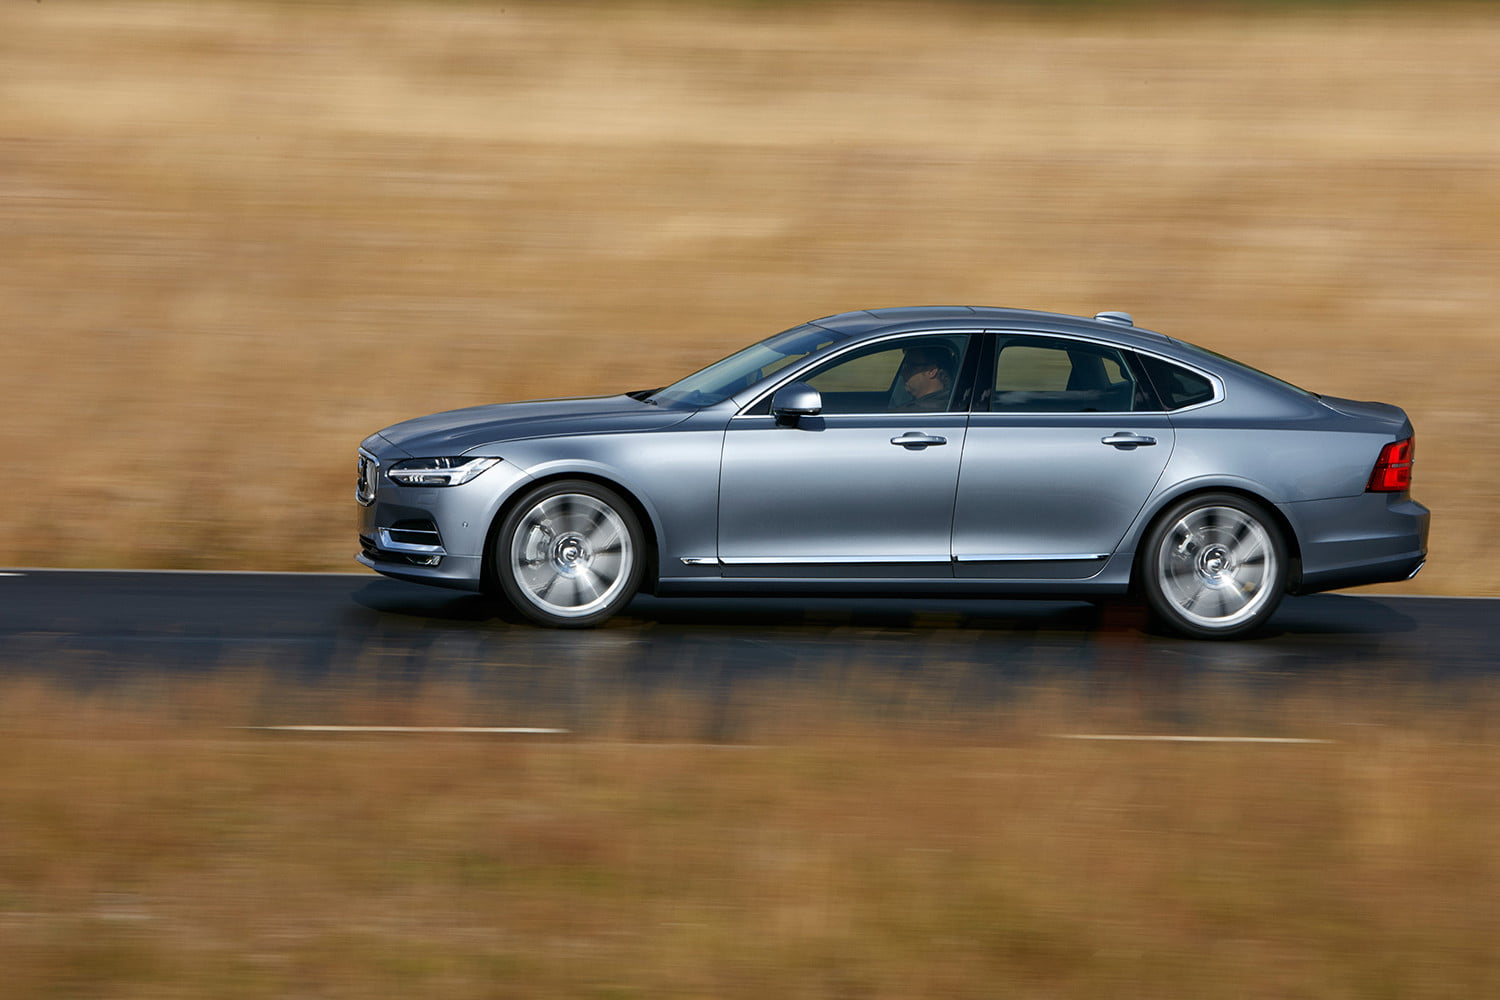 dt cars top stories of 2015 170076 location profile left volvo s90 mussel blue